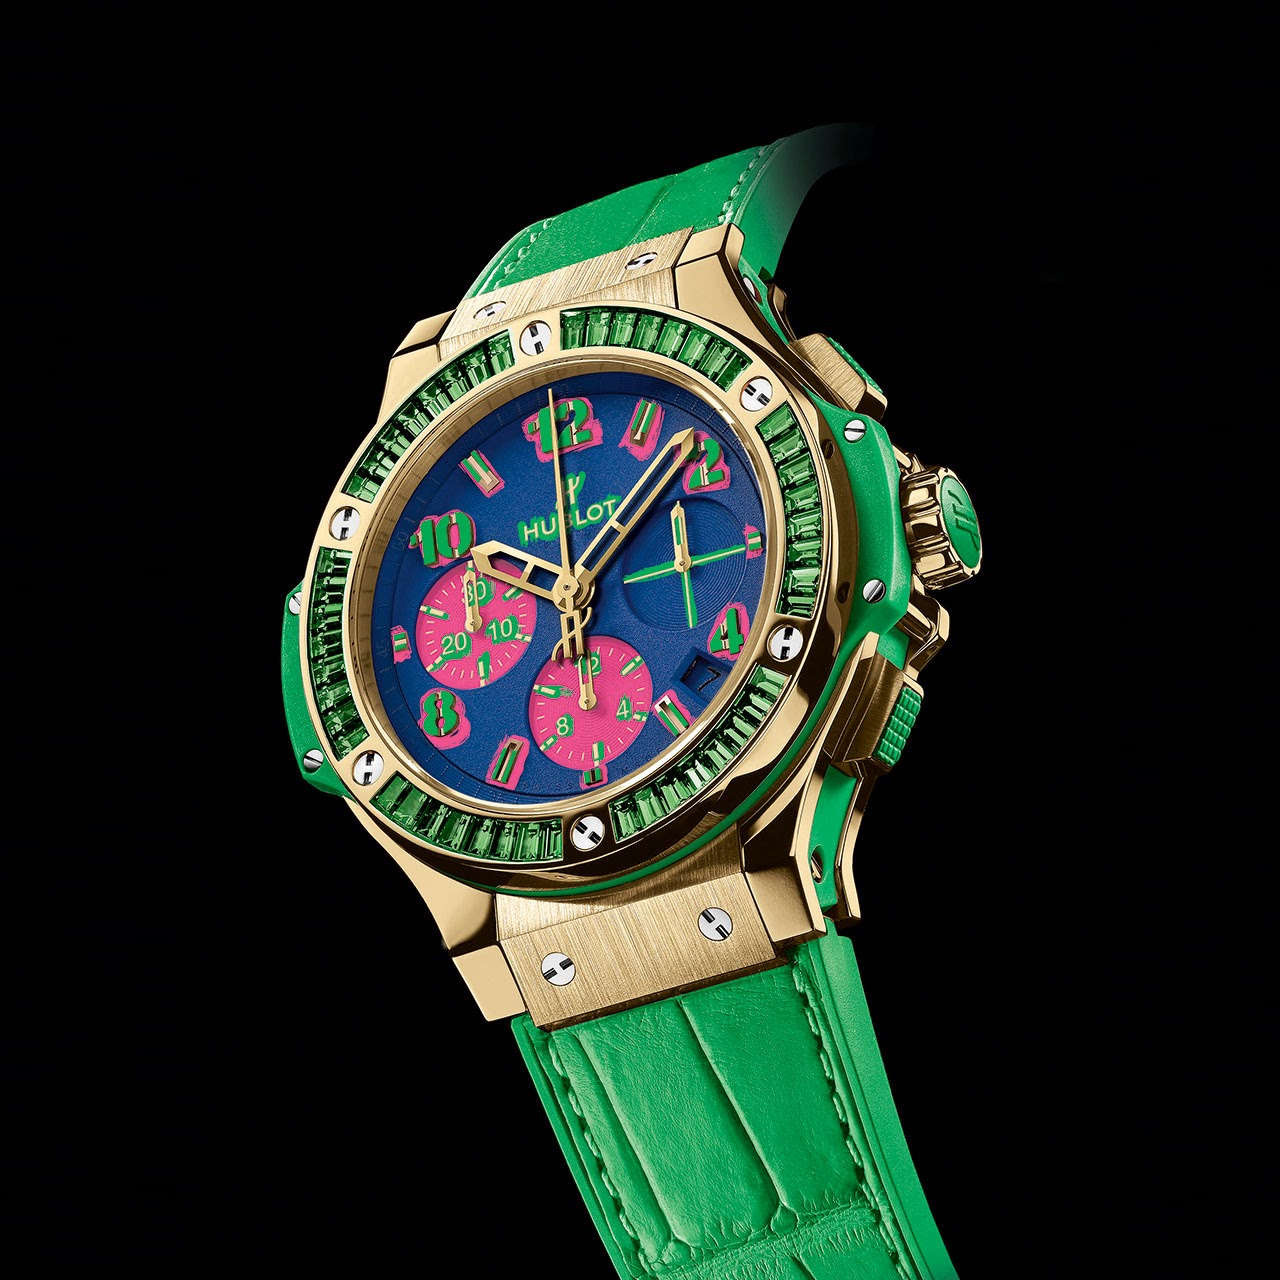 Hublot Big Bang Pop Art Automatic Chronograph Watch blue